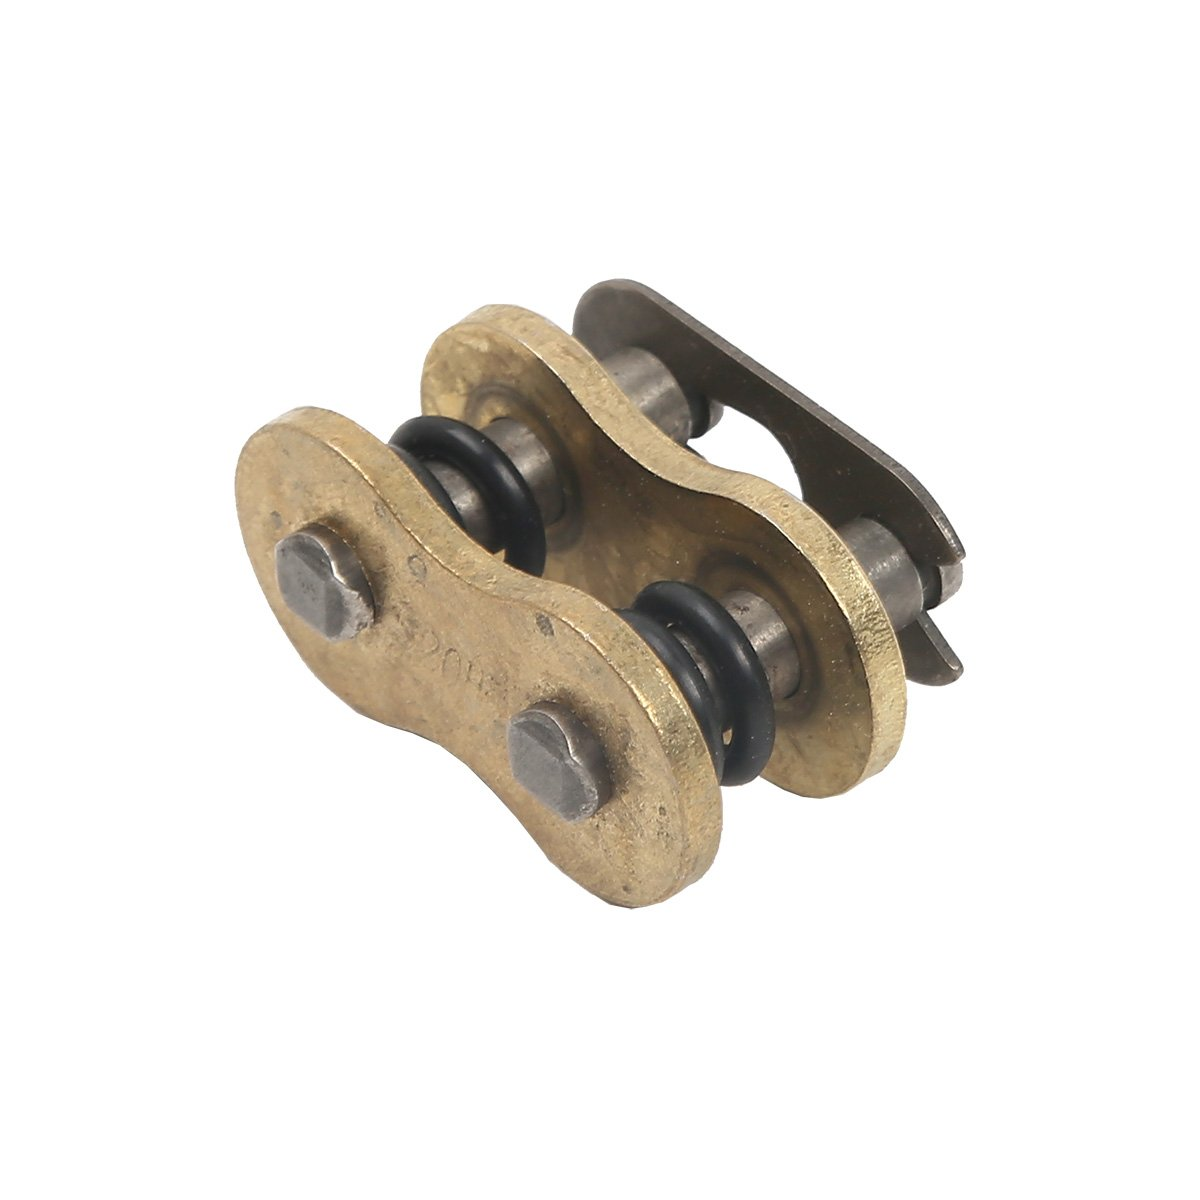 Tengchang 520H Heavy Duty Chain Connecting Master Link with O-ring